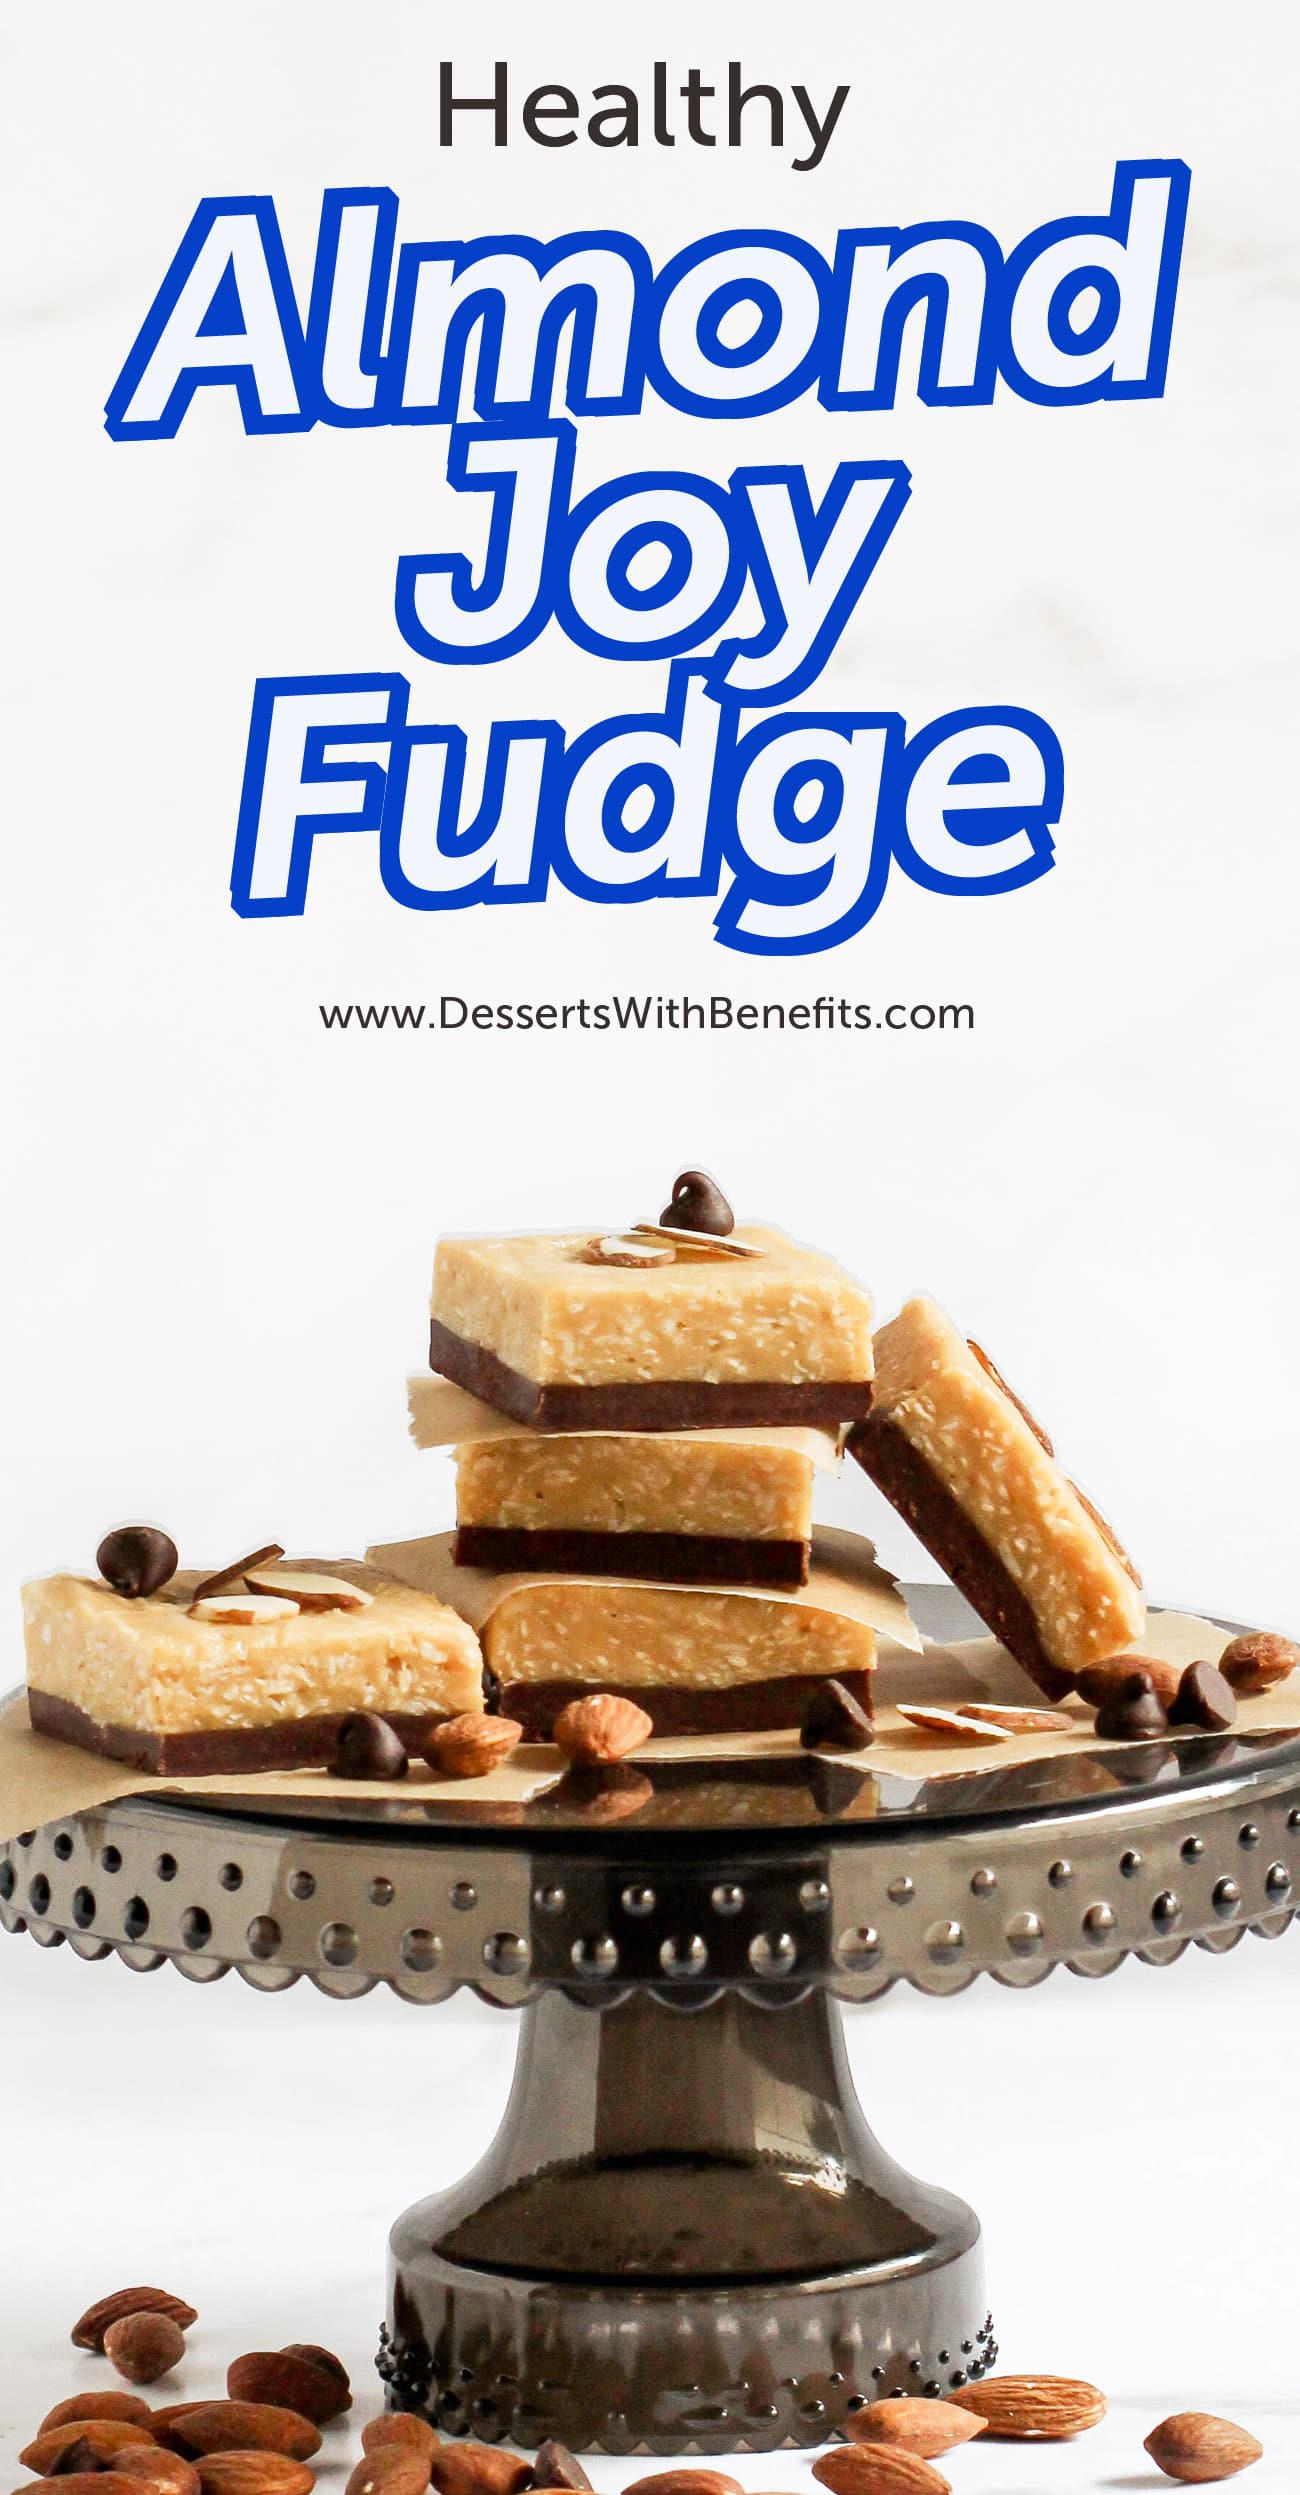 This Almond Joy Candy Fudge is healthy but doesn't taste healthy at all. It's just as soft, sweet and chewy as the original, but without the white sugar, hydrogenated oil, preservatives, and artificial ingredients. This fudge is refined sugar free, high fiber, high protein, and gluten free too!